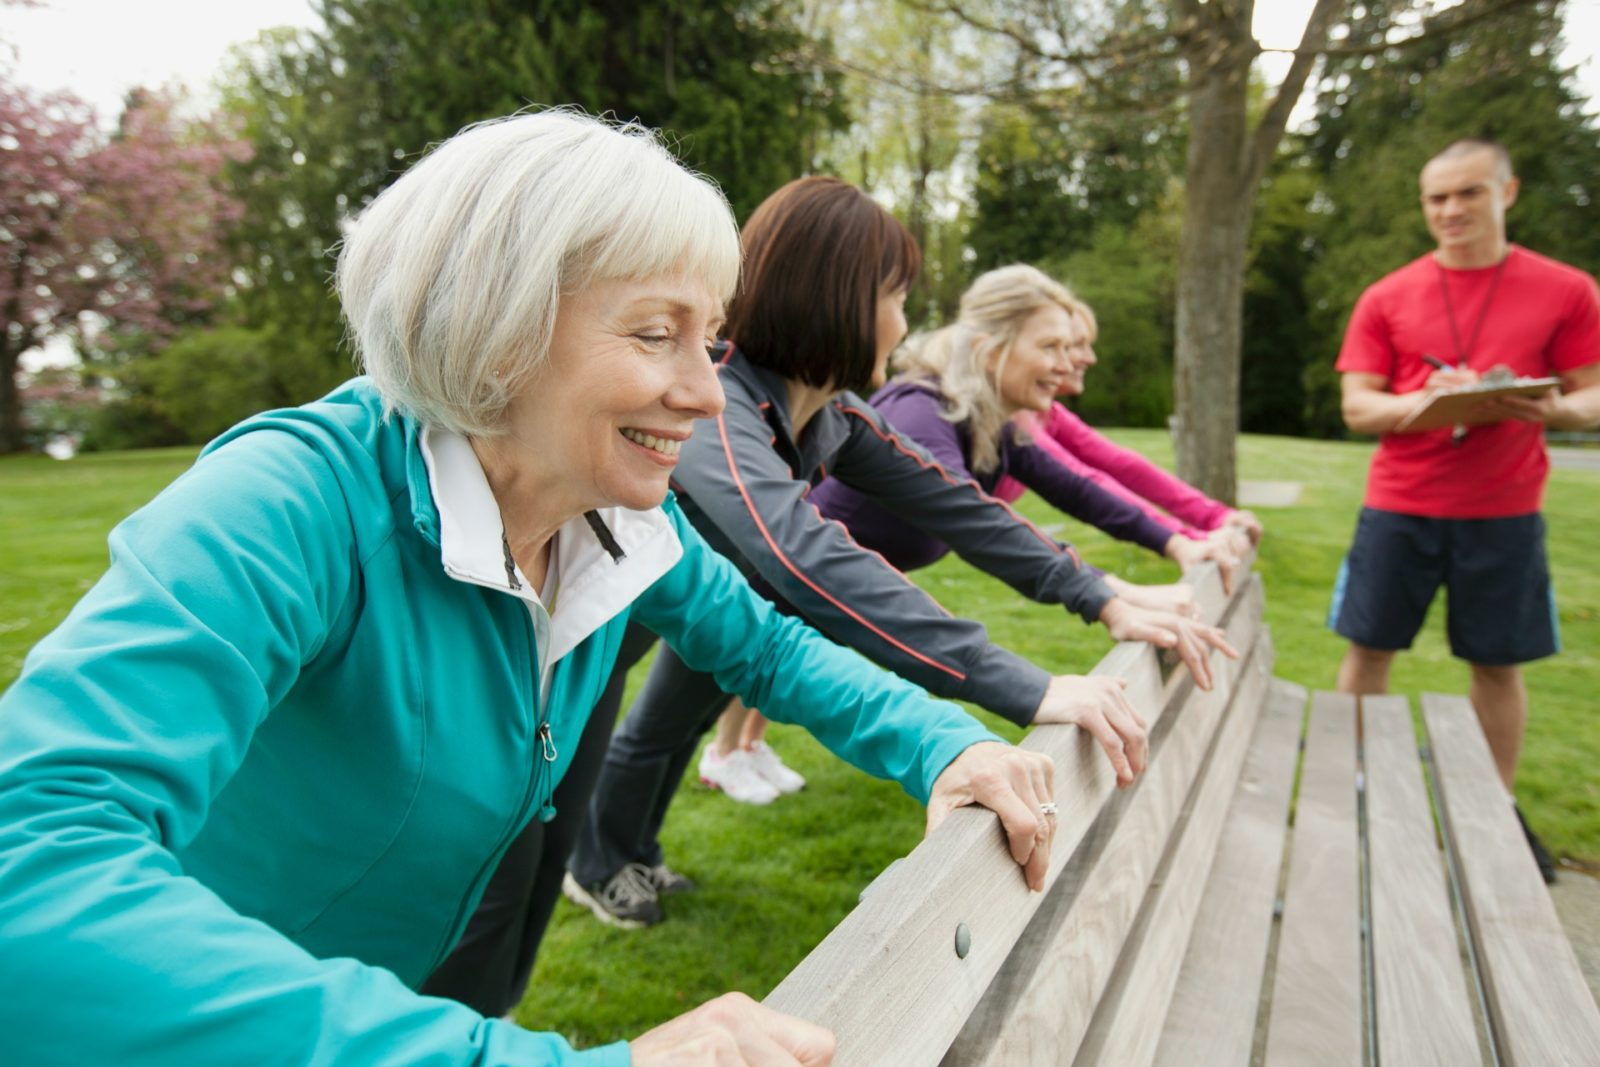 Older women improving their muscles by doing push-ups.